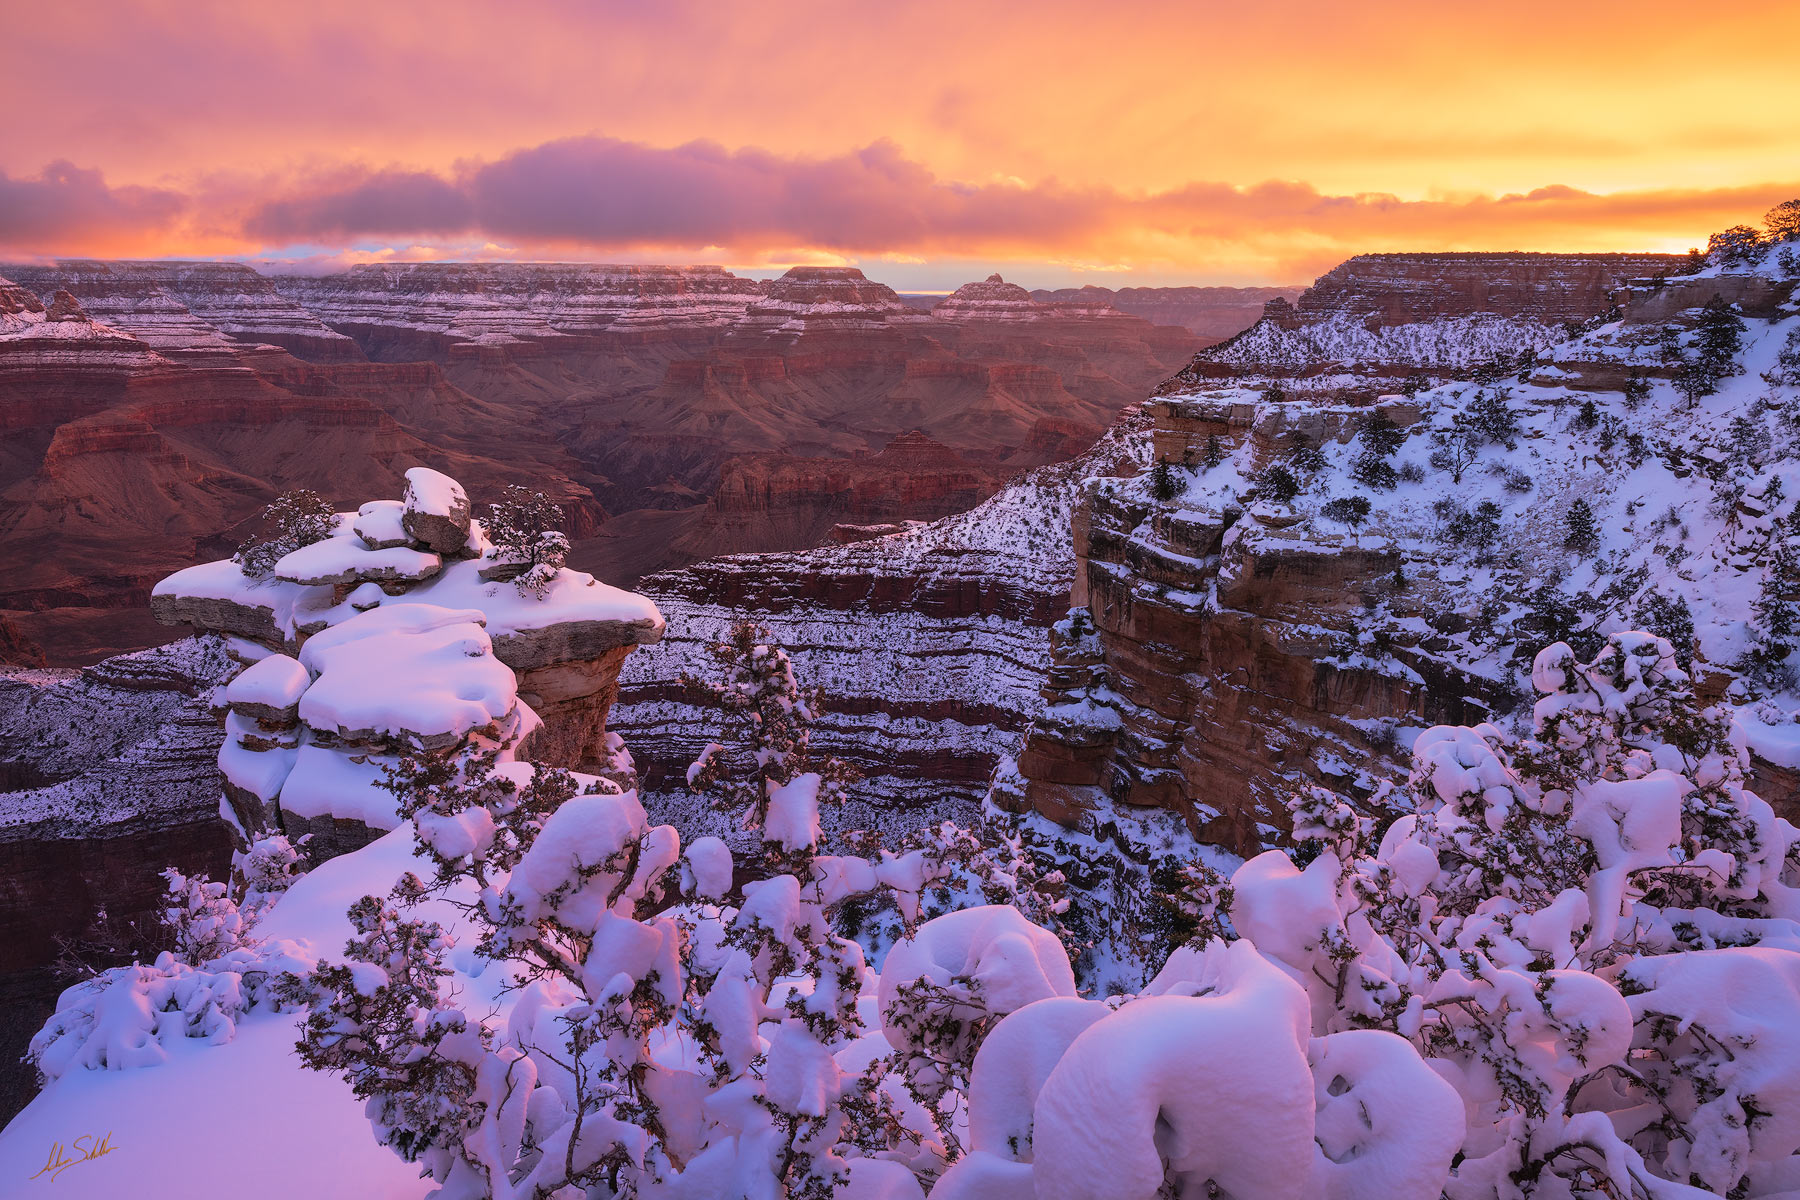 AZ, Arizona, Grand Canyon, Grand Canyon National Park, Snow, Snow at the Grand Canyon, South Rim, South Rim of the Grand Canyon, Sunrise, Sunrise at the Grand Canyon, Winter, Winter at the Grand Canyo, photo